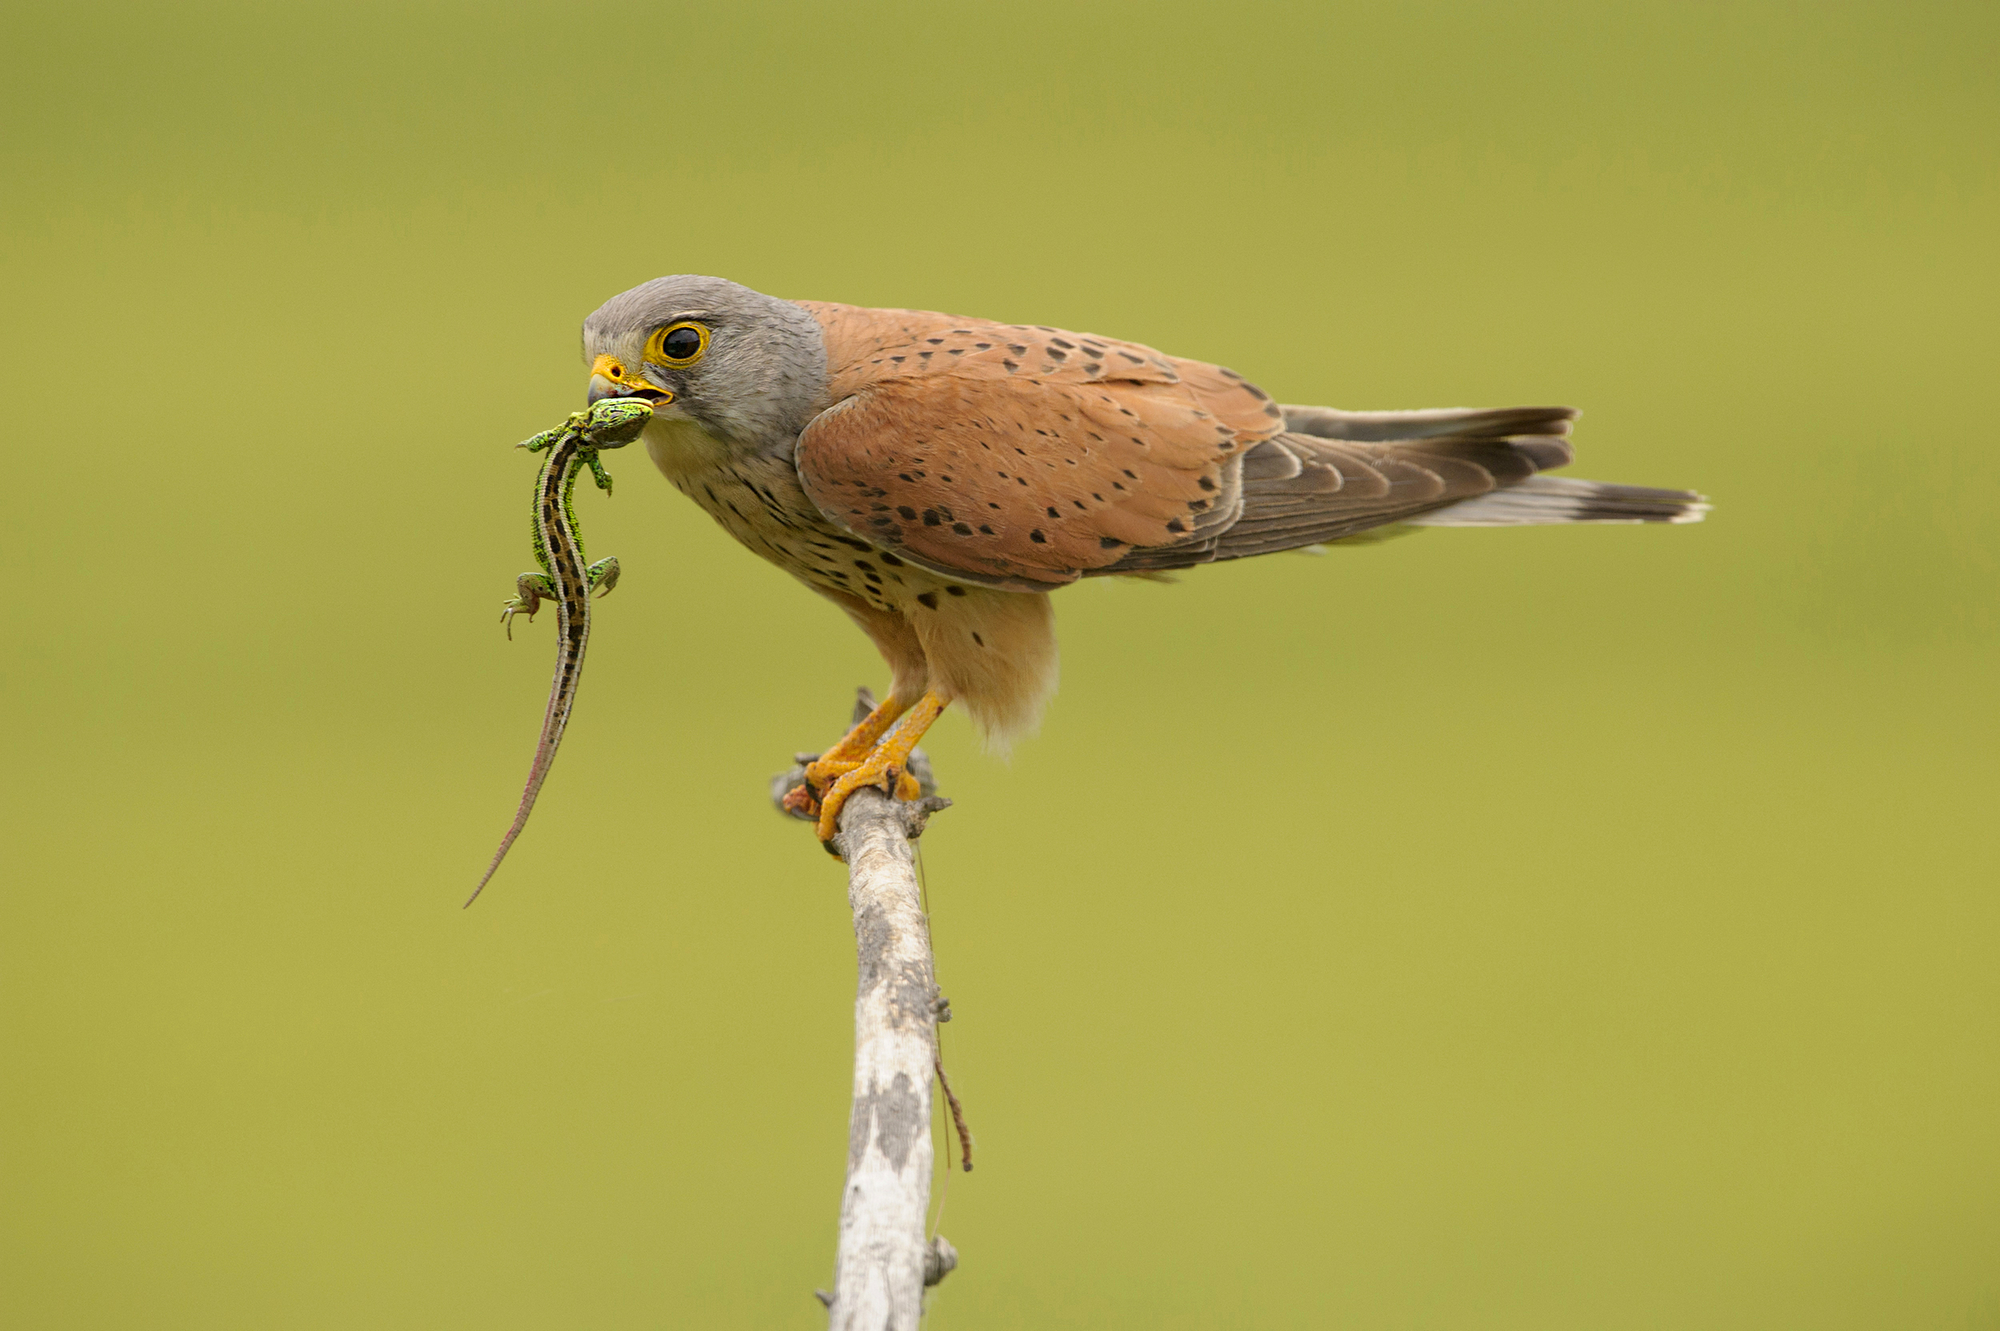 Common kestrel with a lizard in its beak, Hungary, Europe